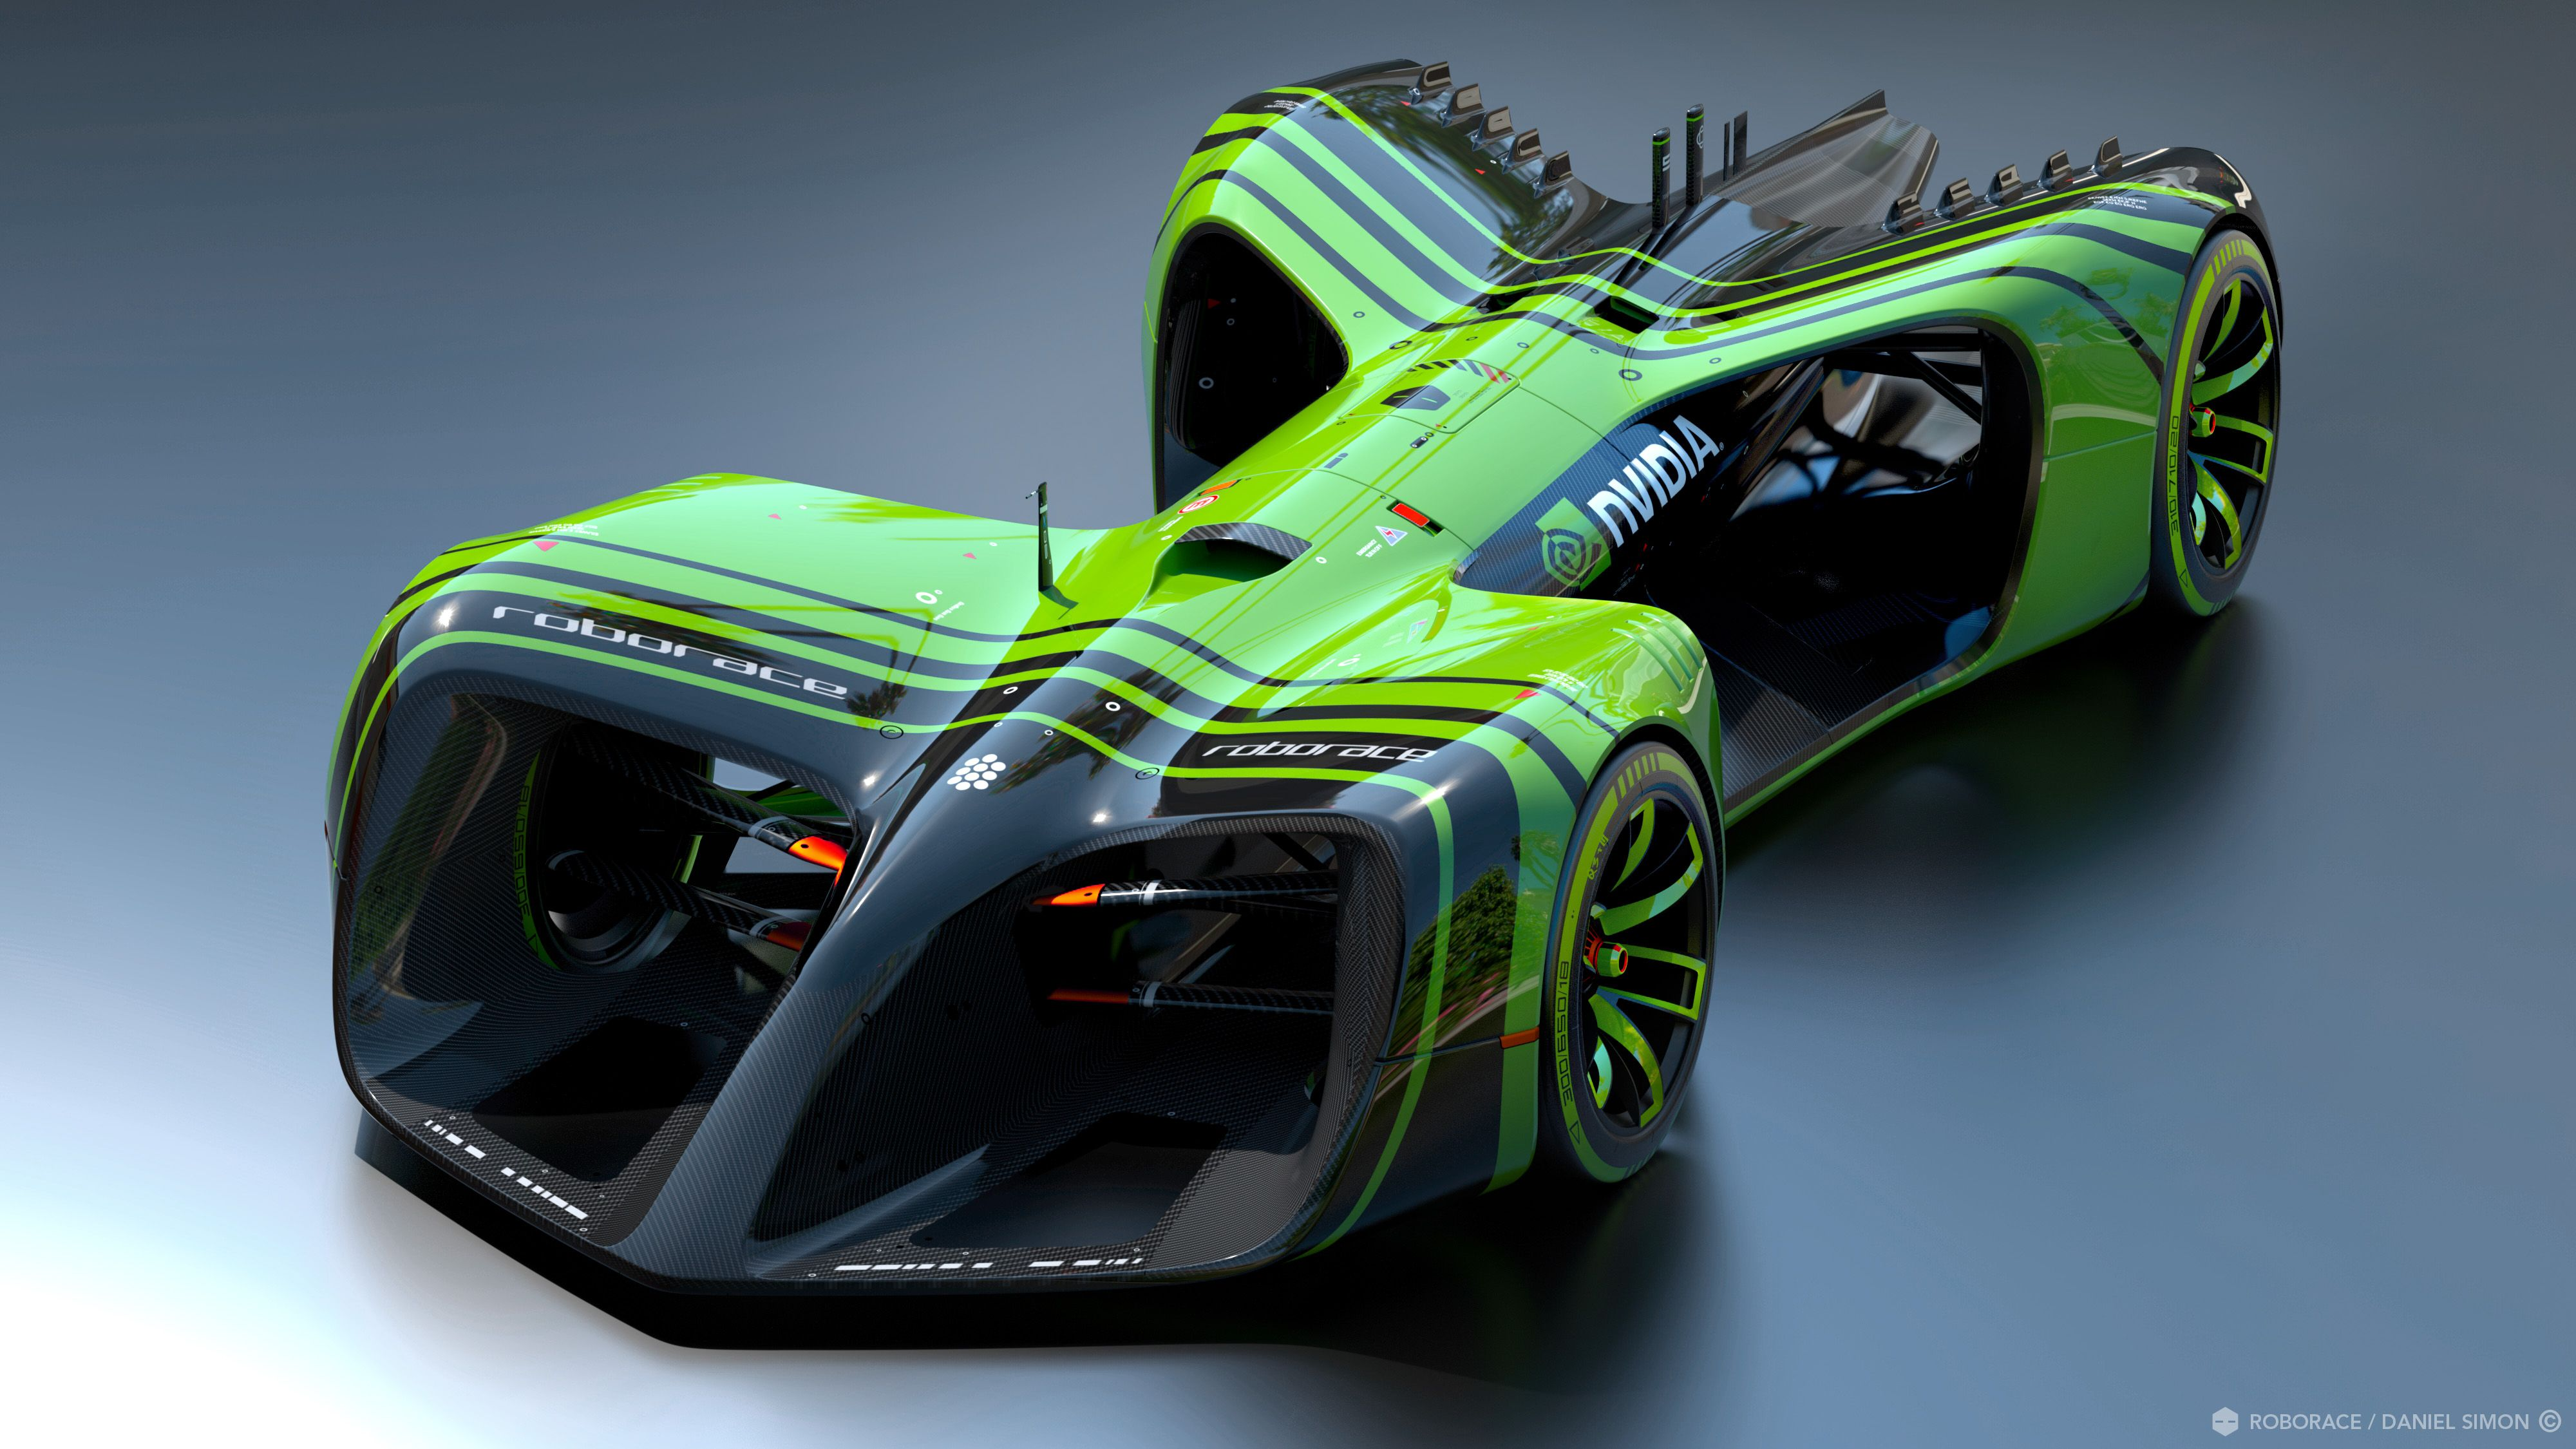 NVIDIA's Drive PX 2 will be the brains inside the cars competing in Roborace.